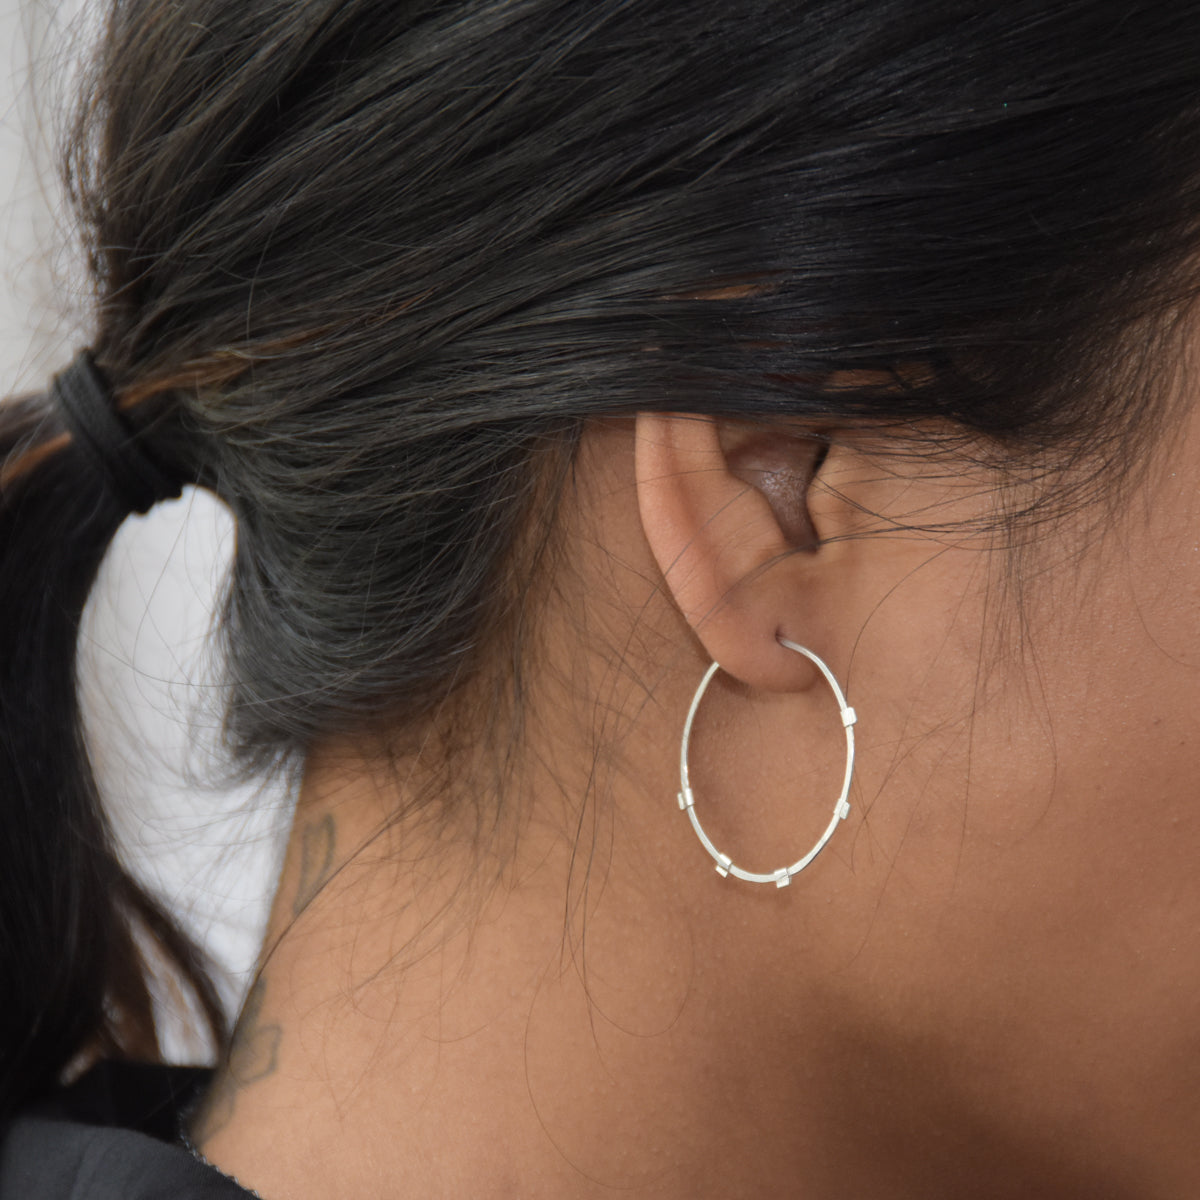 Sunburst Hoops - Sterling Silver